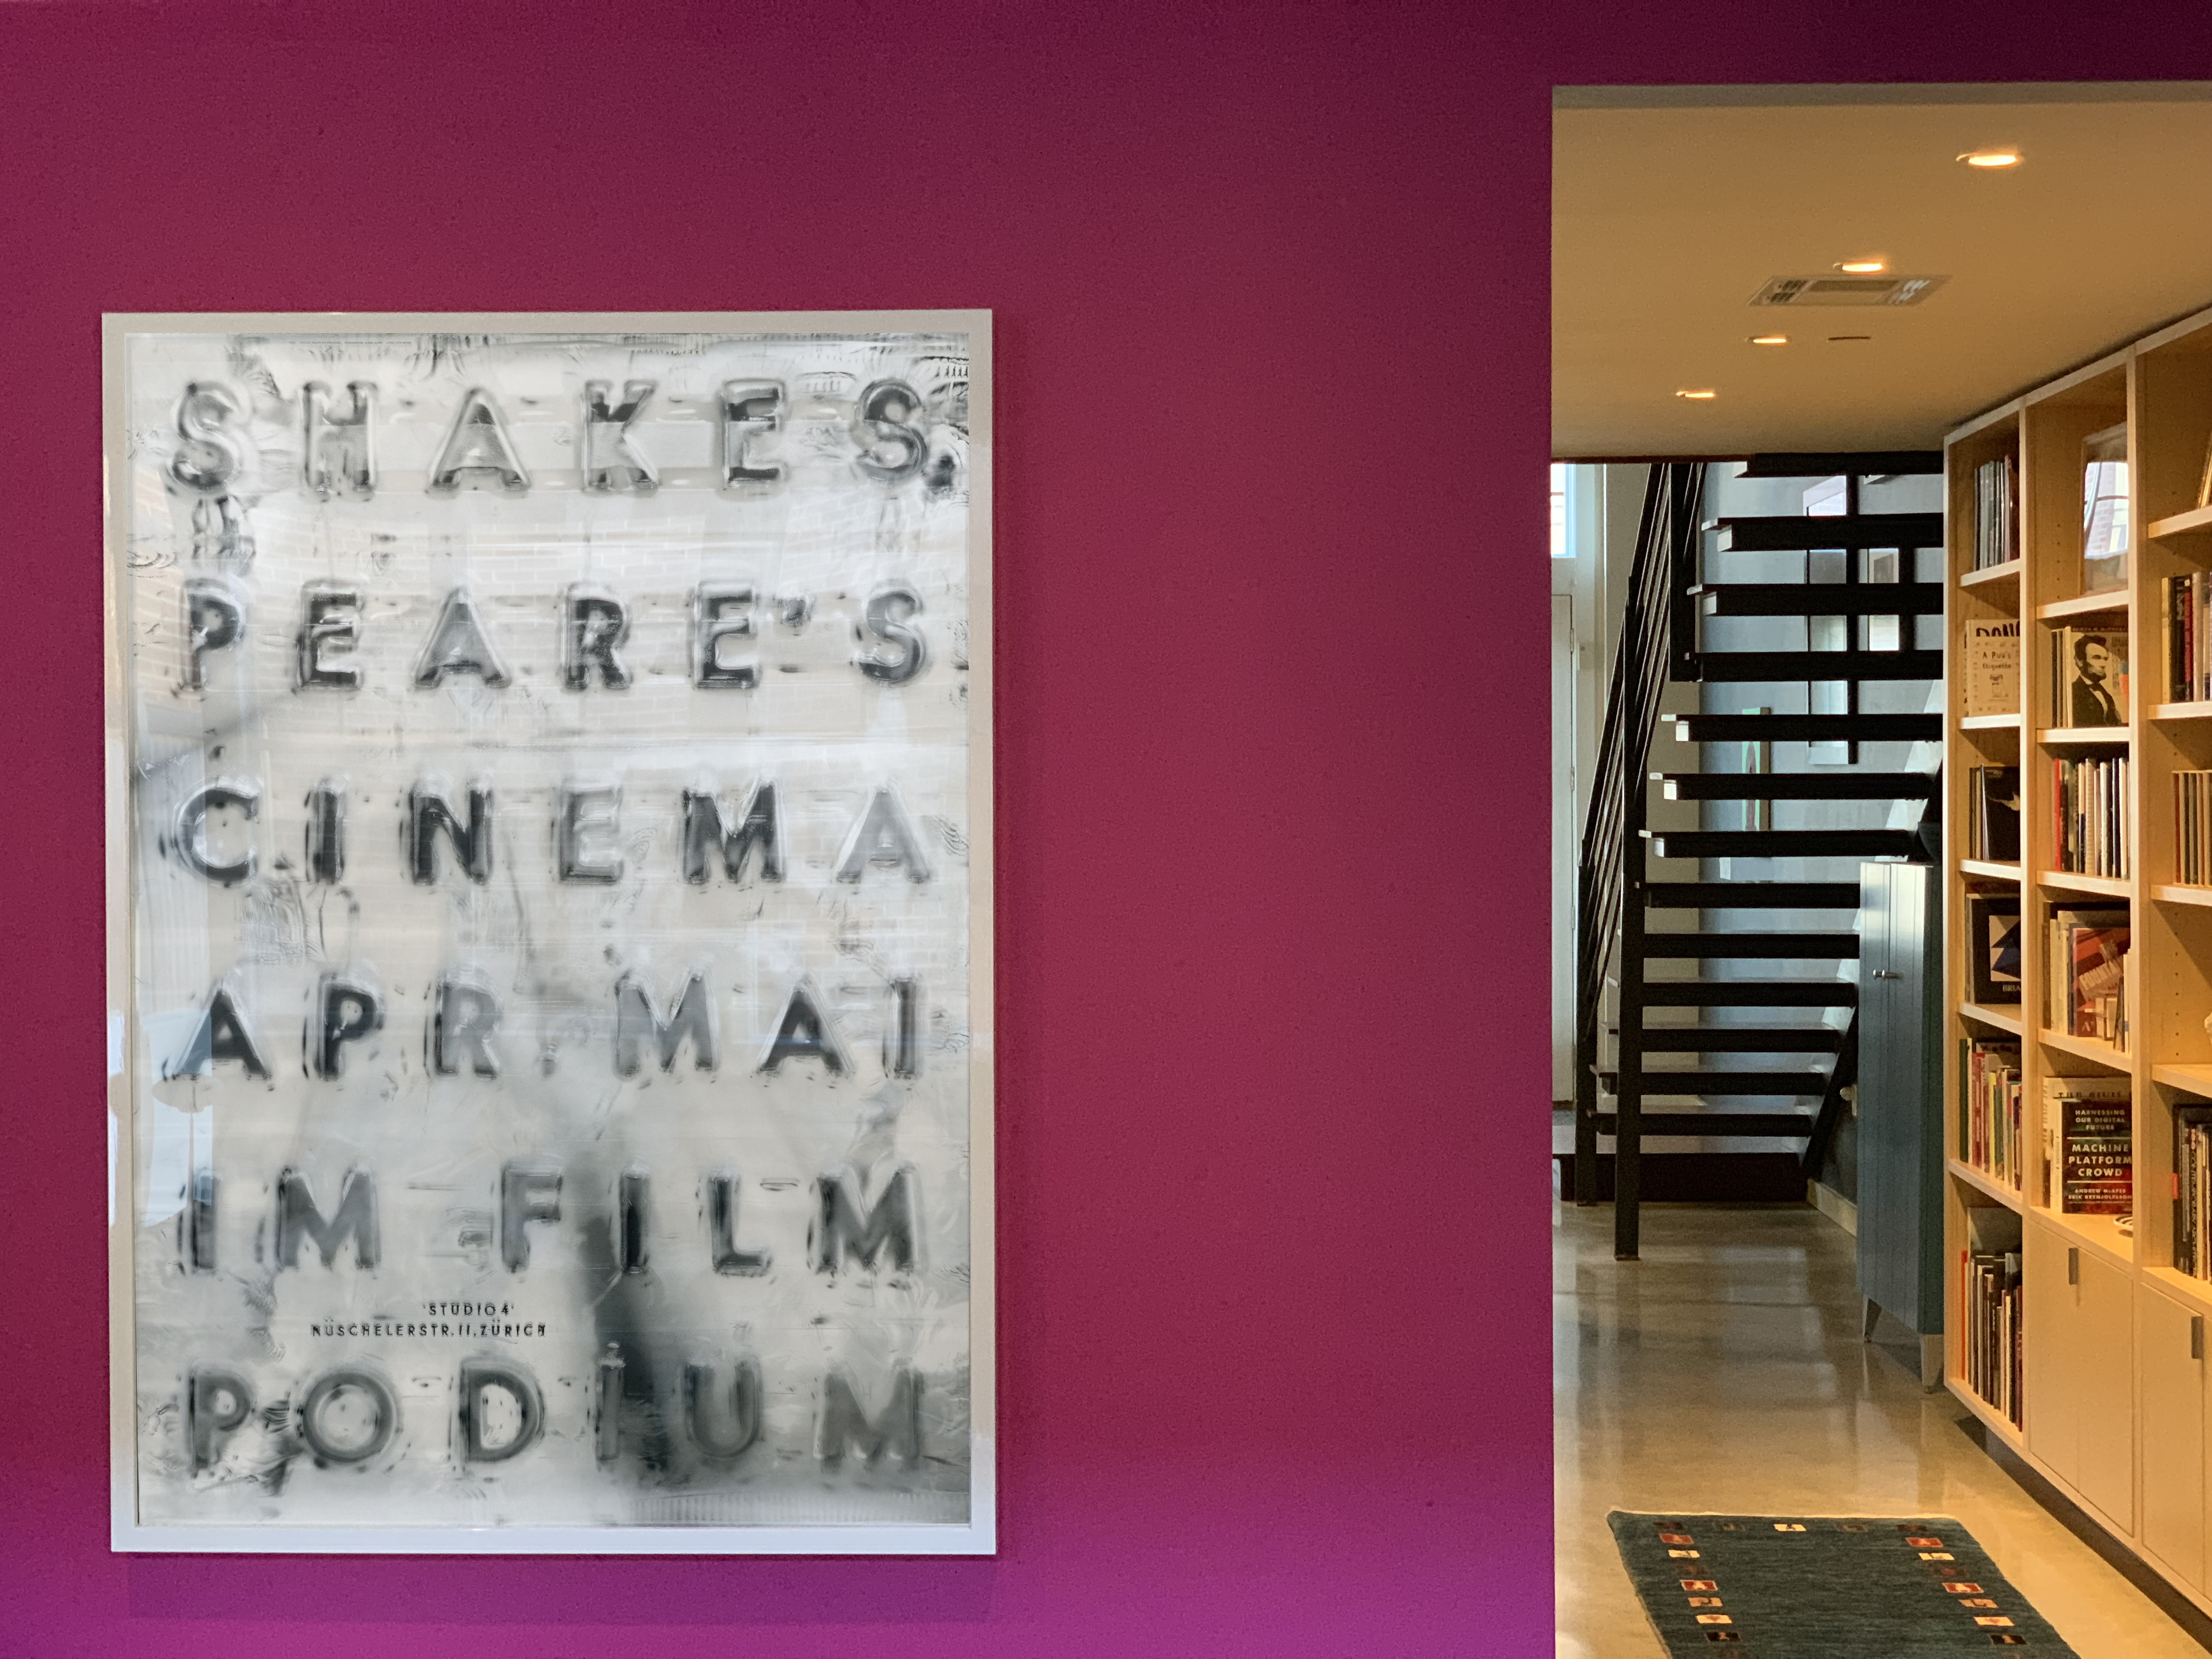 hallway with accent wall and Shakespeare Filmpodium poster; pink, white, black